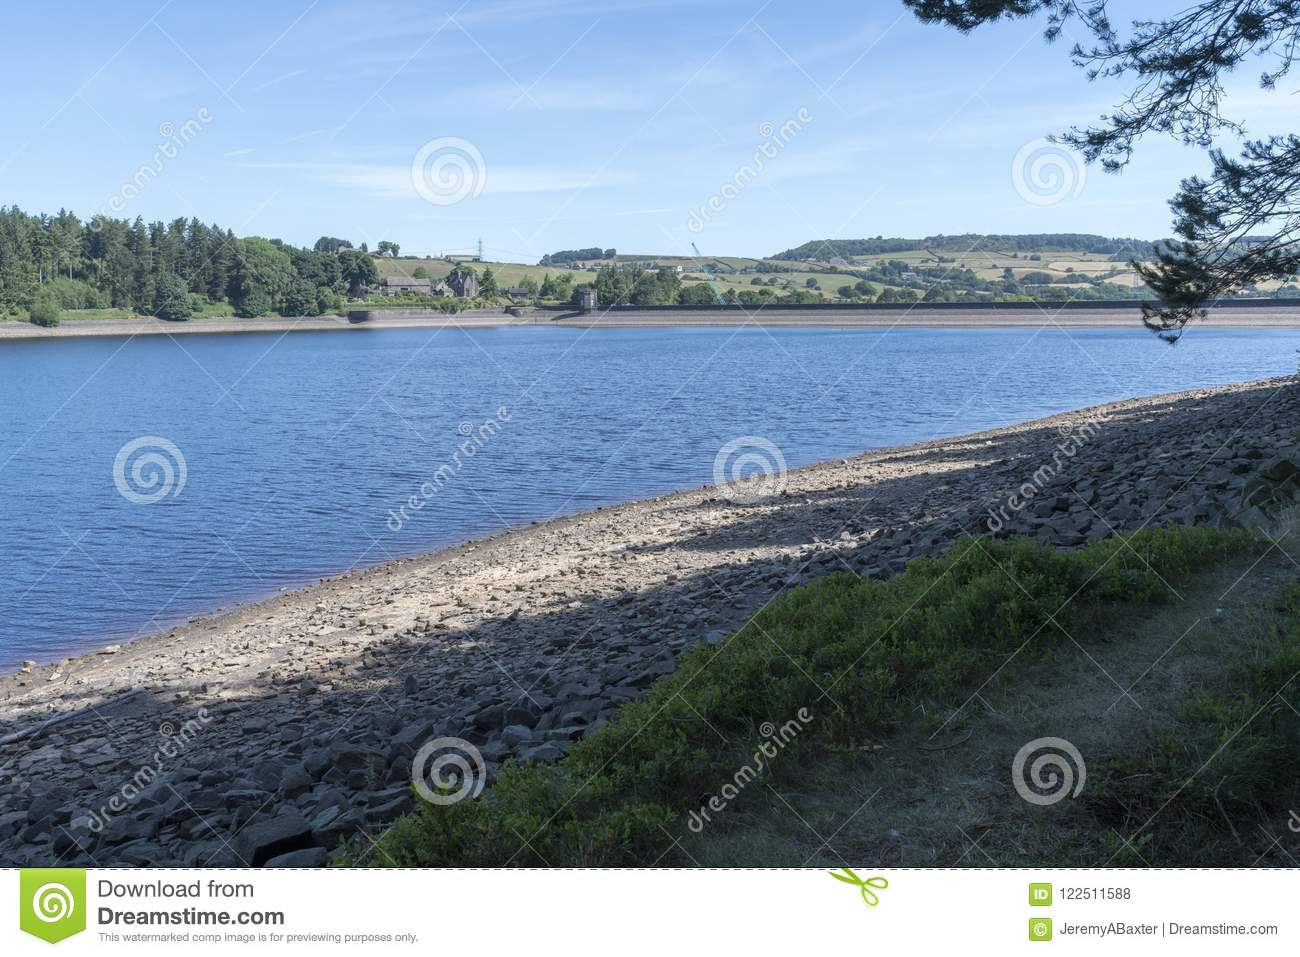 Langsett Reservoir in South Yorkshire on the edge of the Peak District